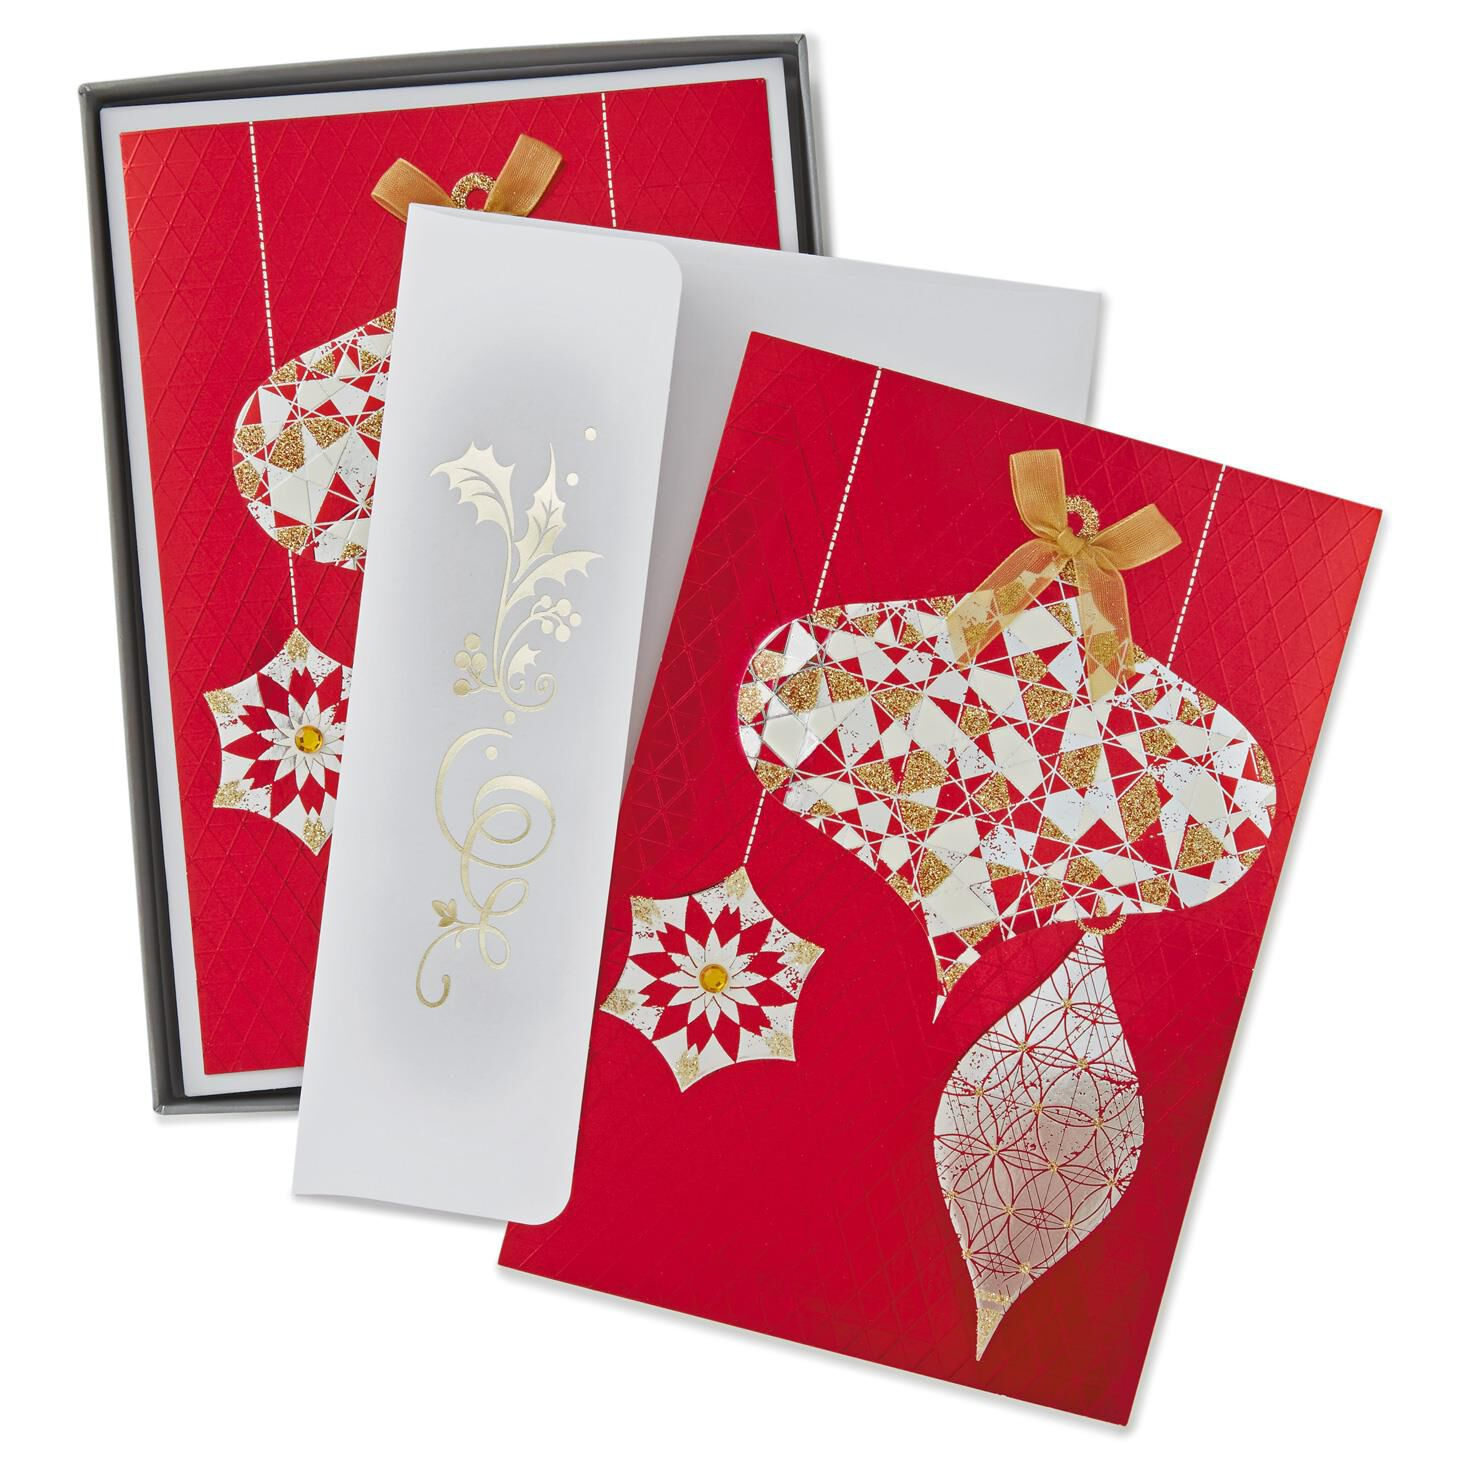 fancy ornaments christmas cards box of 12 boxed cards hallmark - Fancy Christmas Cards